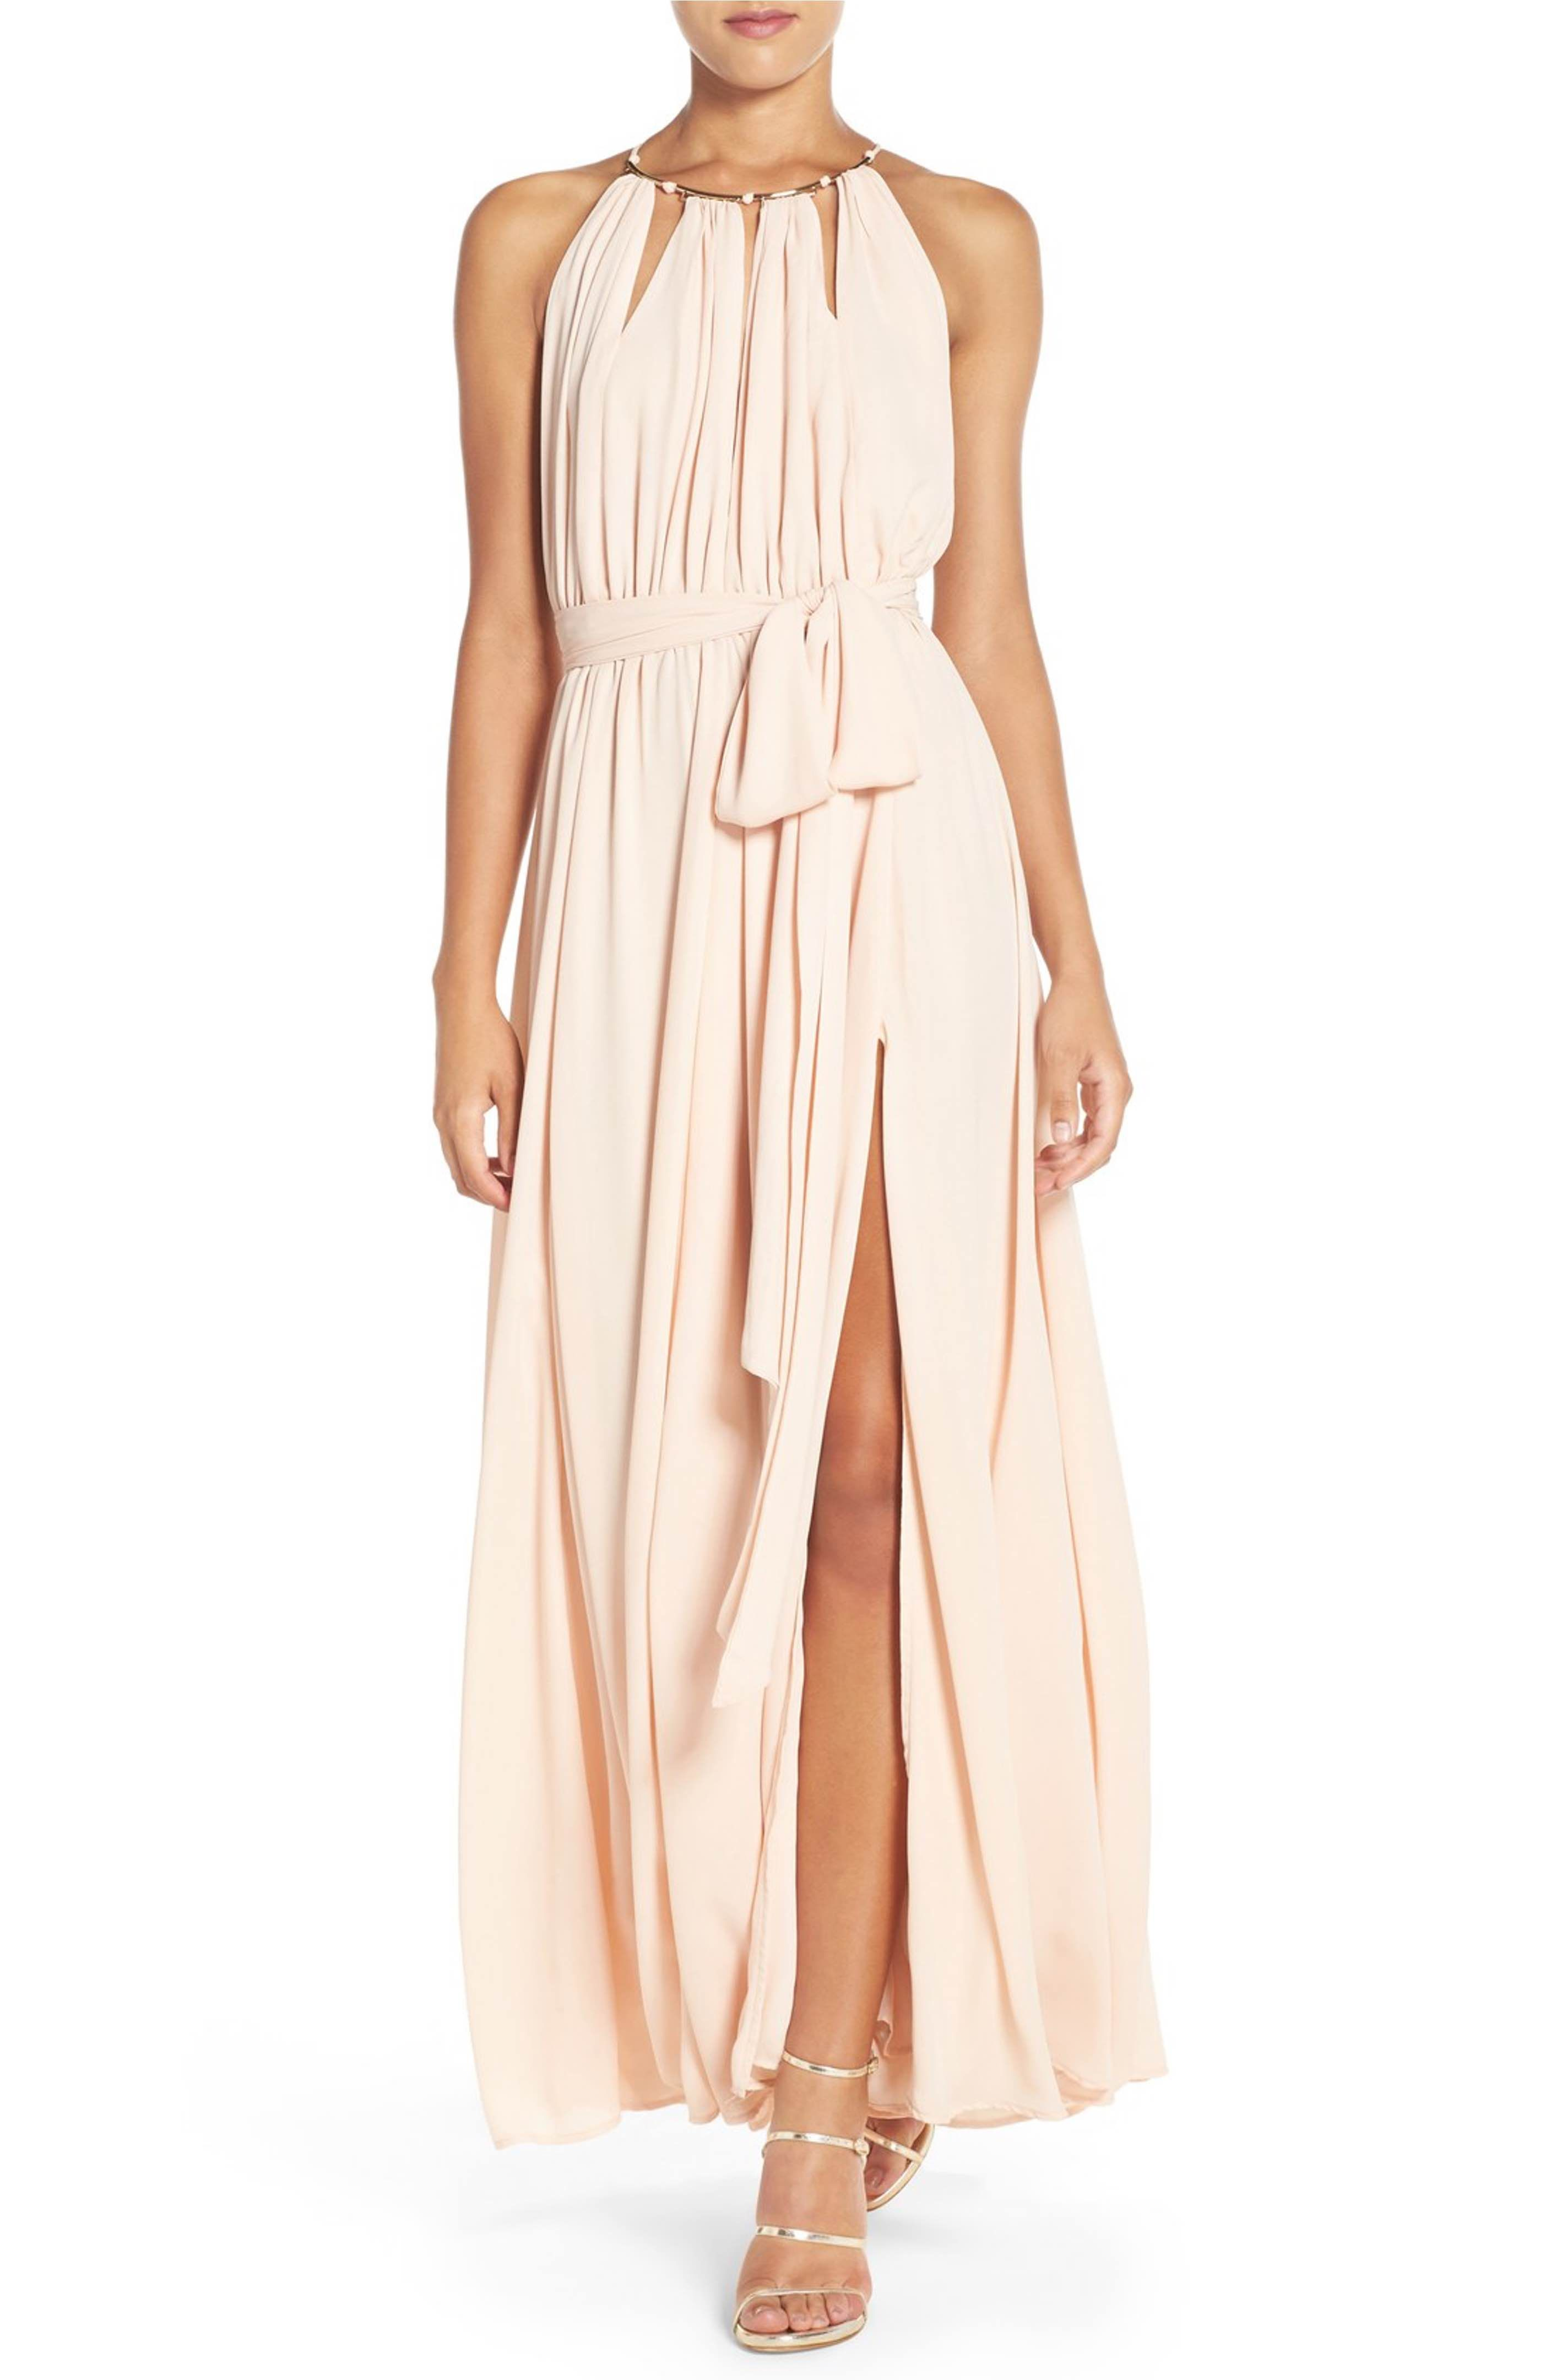 Main image lulus gold metallic halter neck chiffon gown shannons